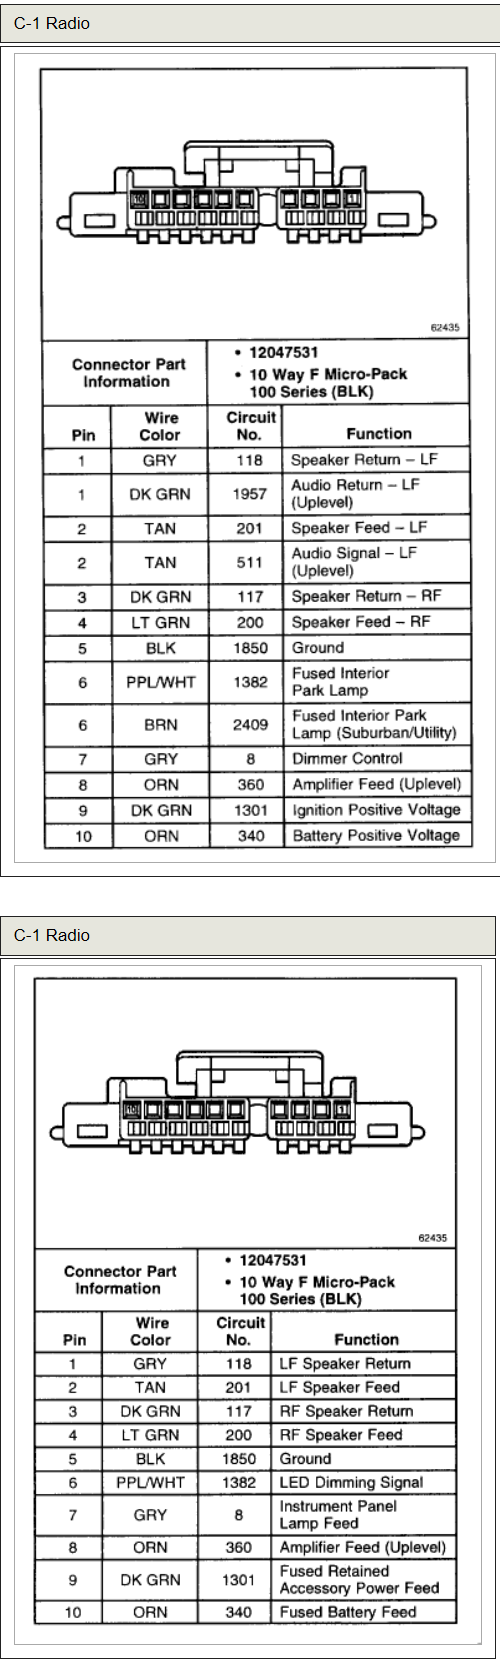 Chevrolet Car Radio Stereo Audio Wiring Diagram Autoradio Connector Usb Powered Power Amplifier Wire Installation Schematic Schema Esquema De Conexiones Anschlusskammern Konektor